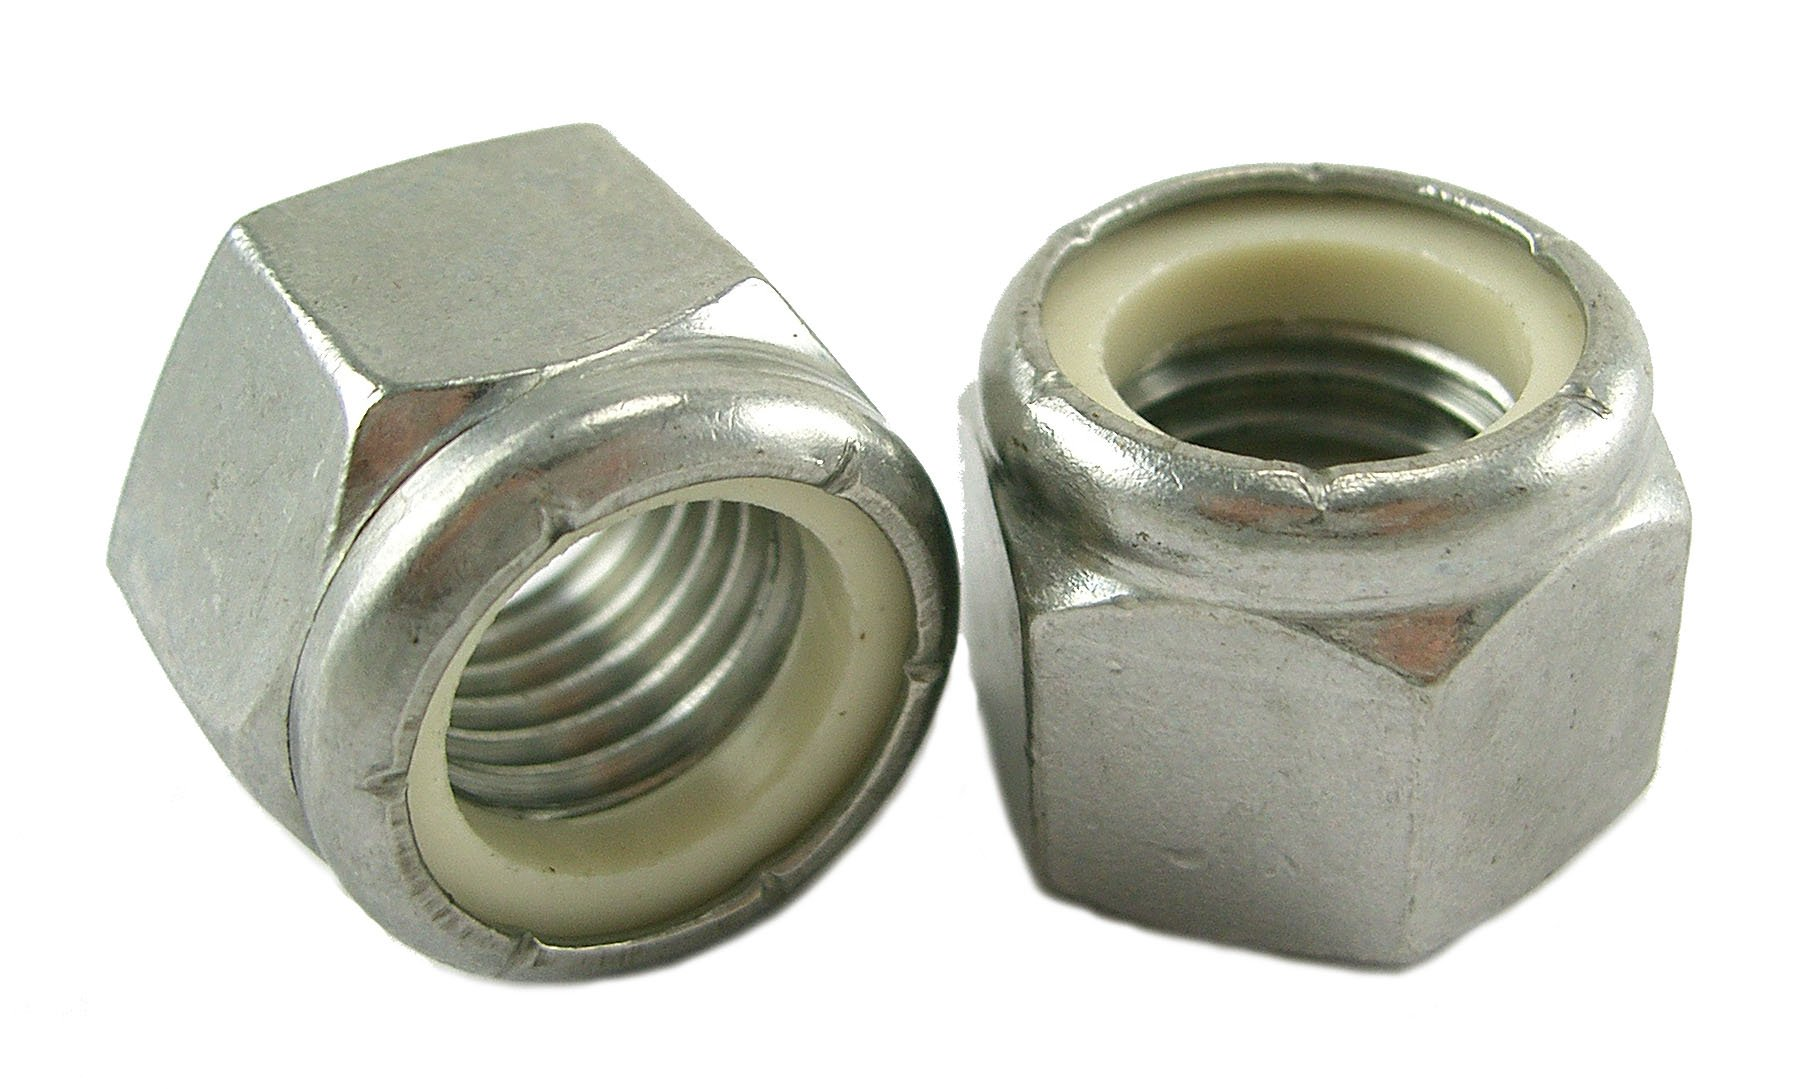 10-32 Stainless Steel Nylon Insert Lock Nut (Pack of 500) by Stainless Town